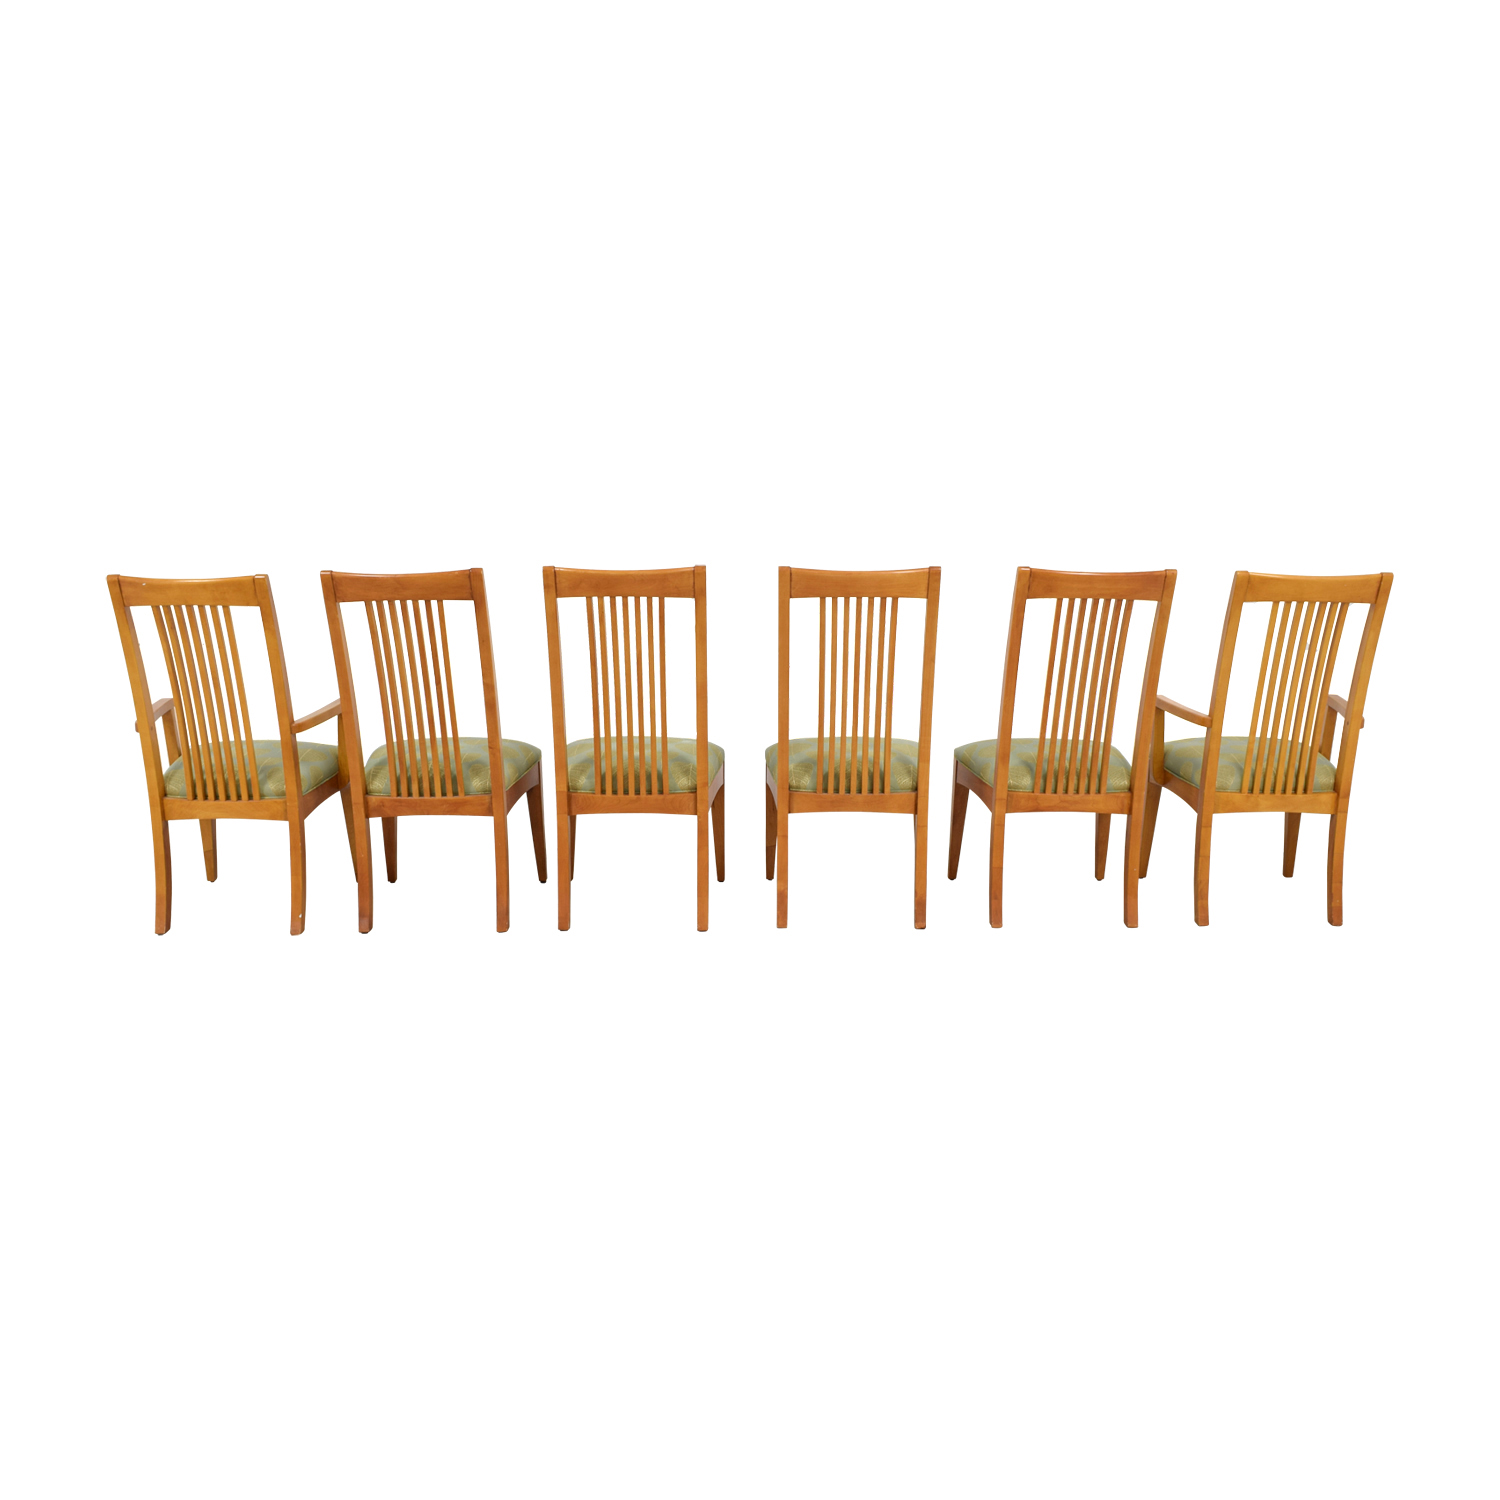 Ethan Allen Ethan Allen New Impressions Sage & Gold Upholstered Dining Chairs dimensions